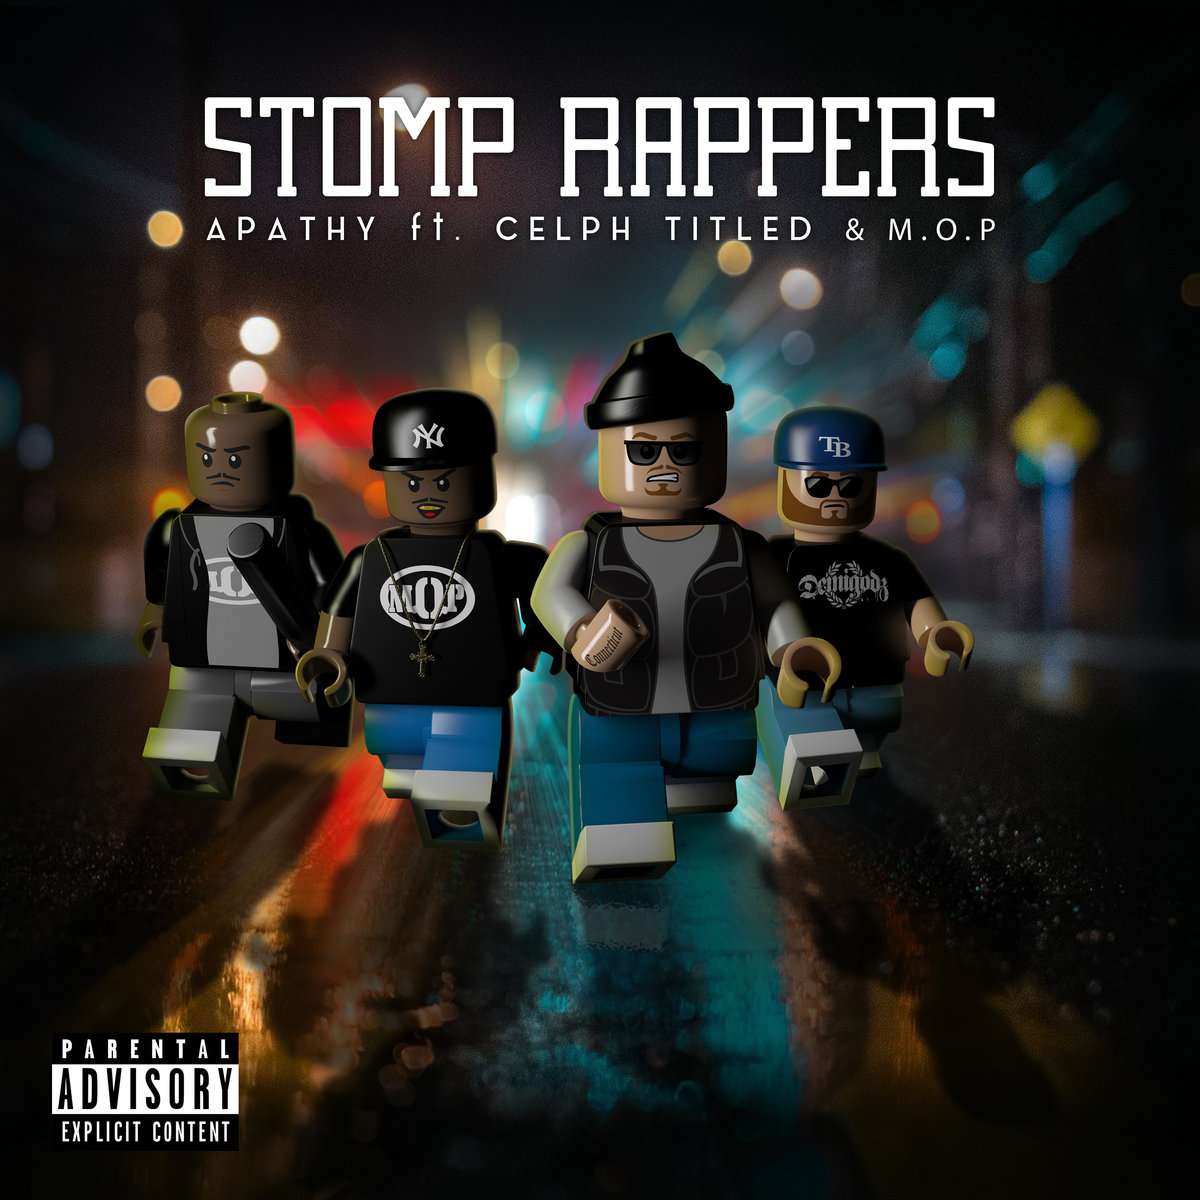 Stomp_rappers